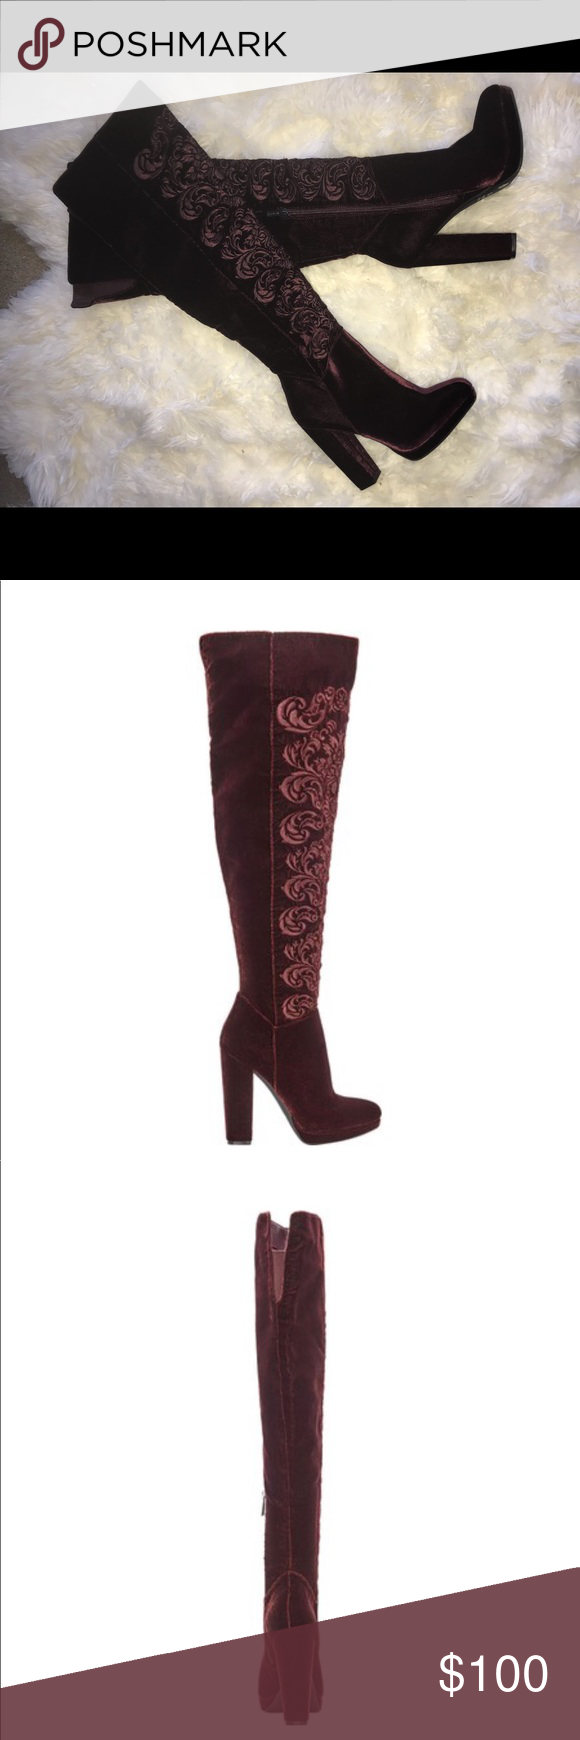 83ccde2d8ee 🔥BNWT Jessica Simpson Grizella Velvet Boot🔥 Upgrade your chic ...